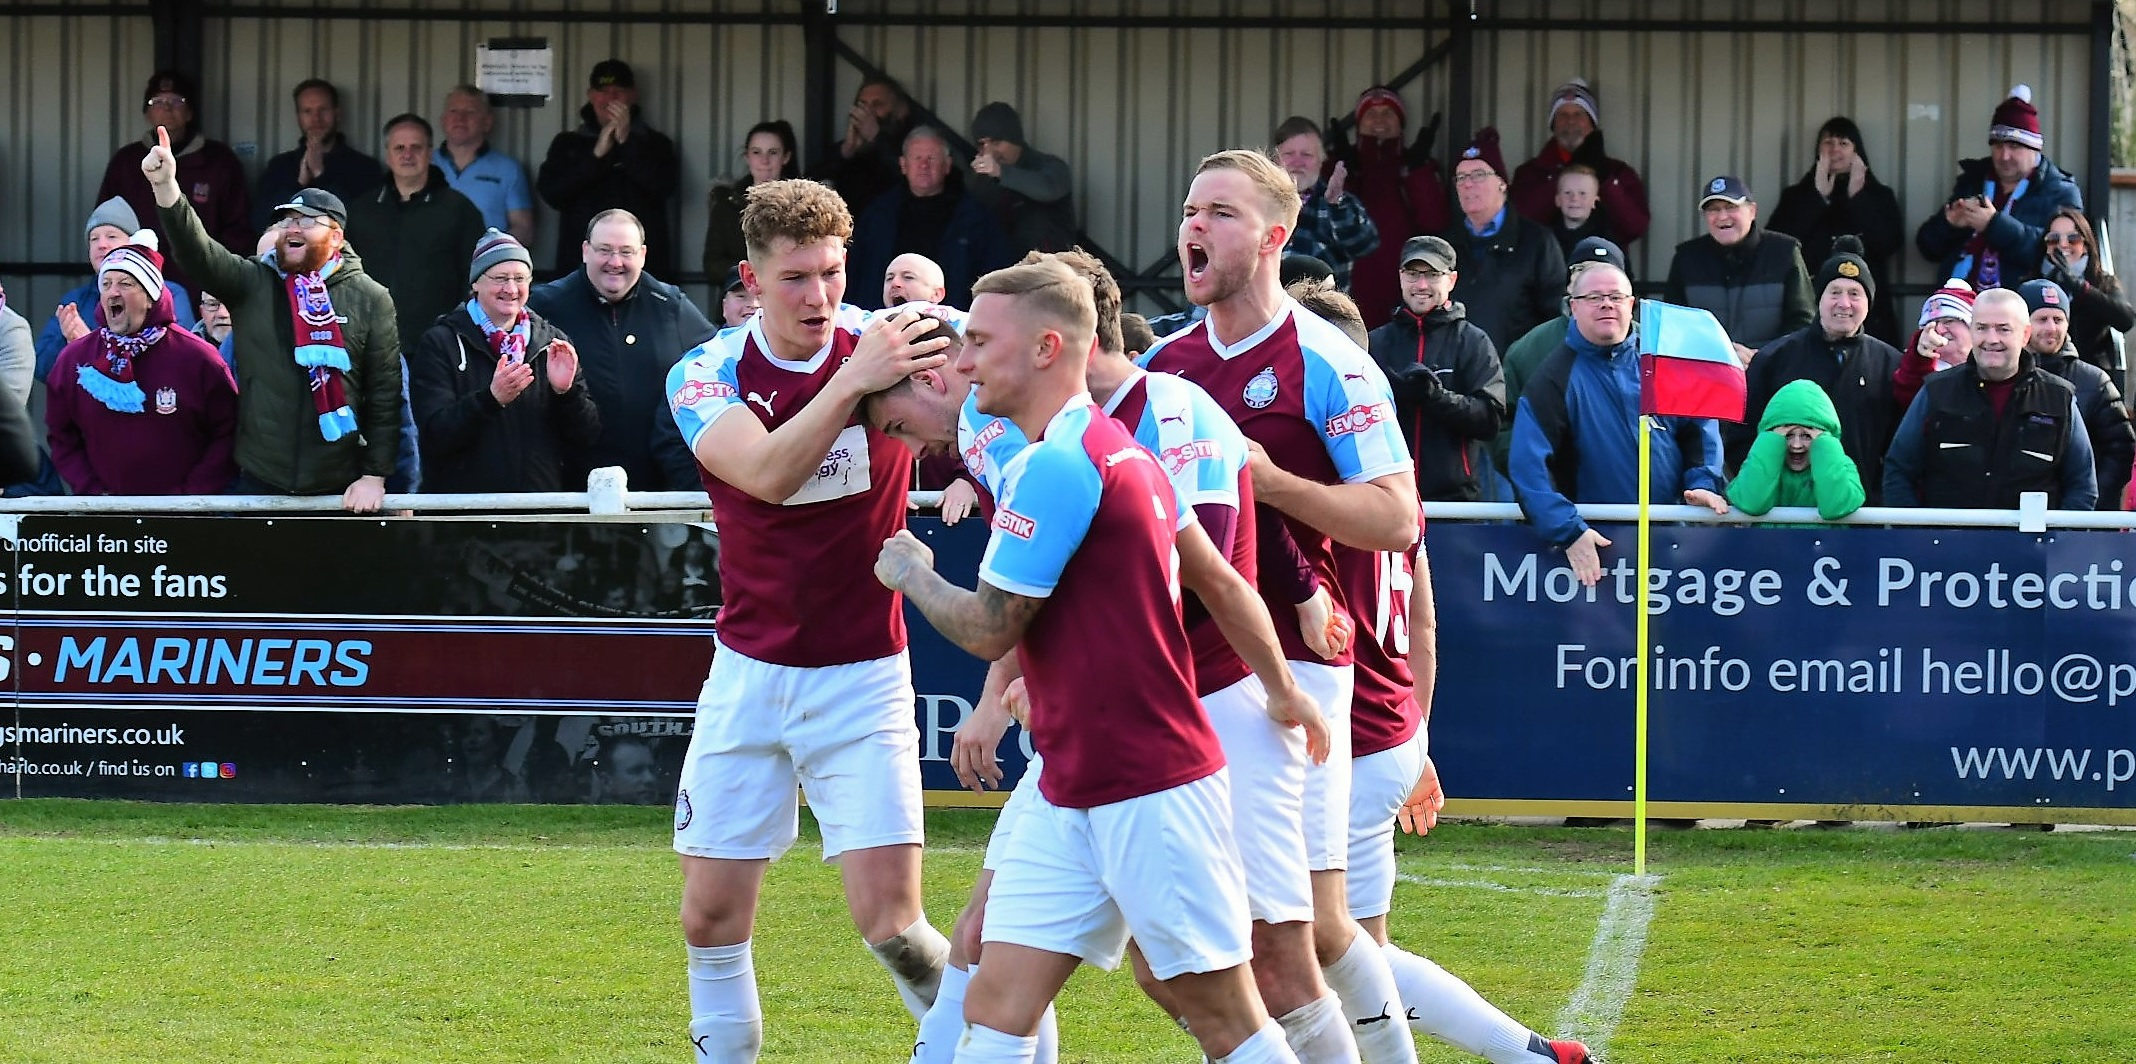 South Shields vs Basford United